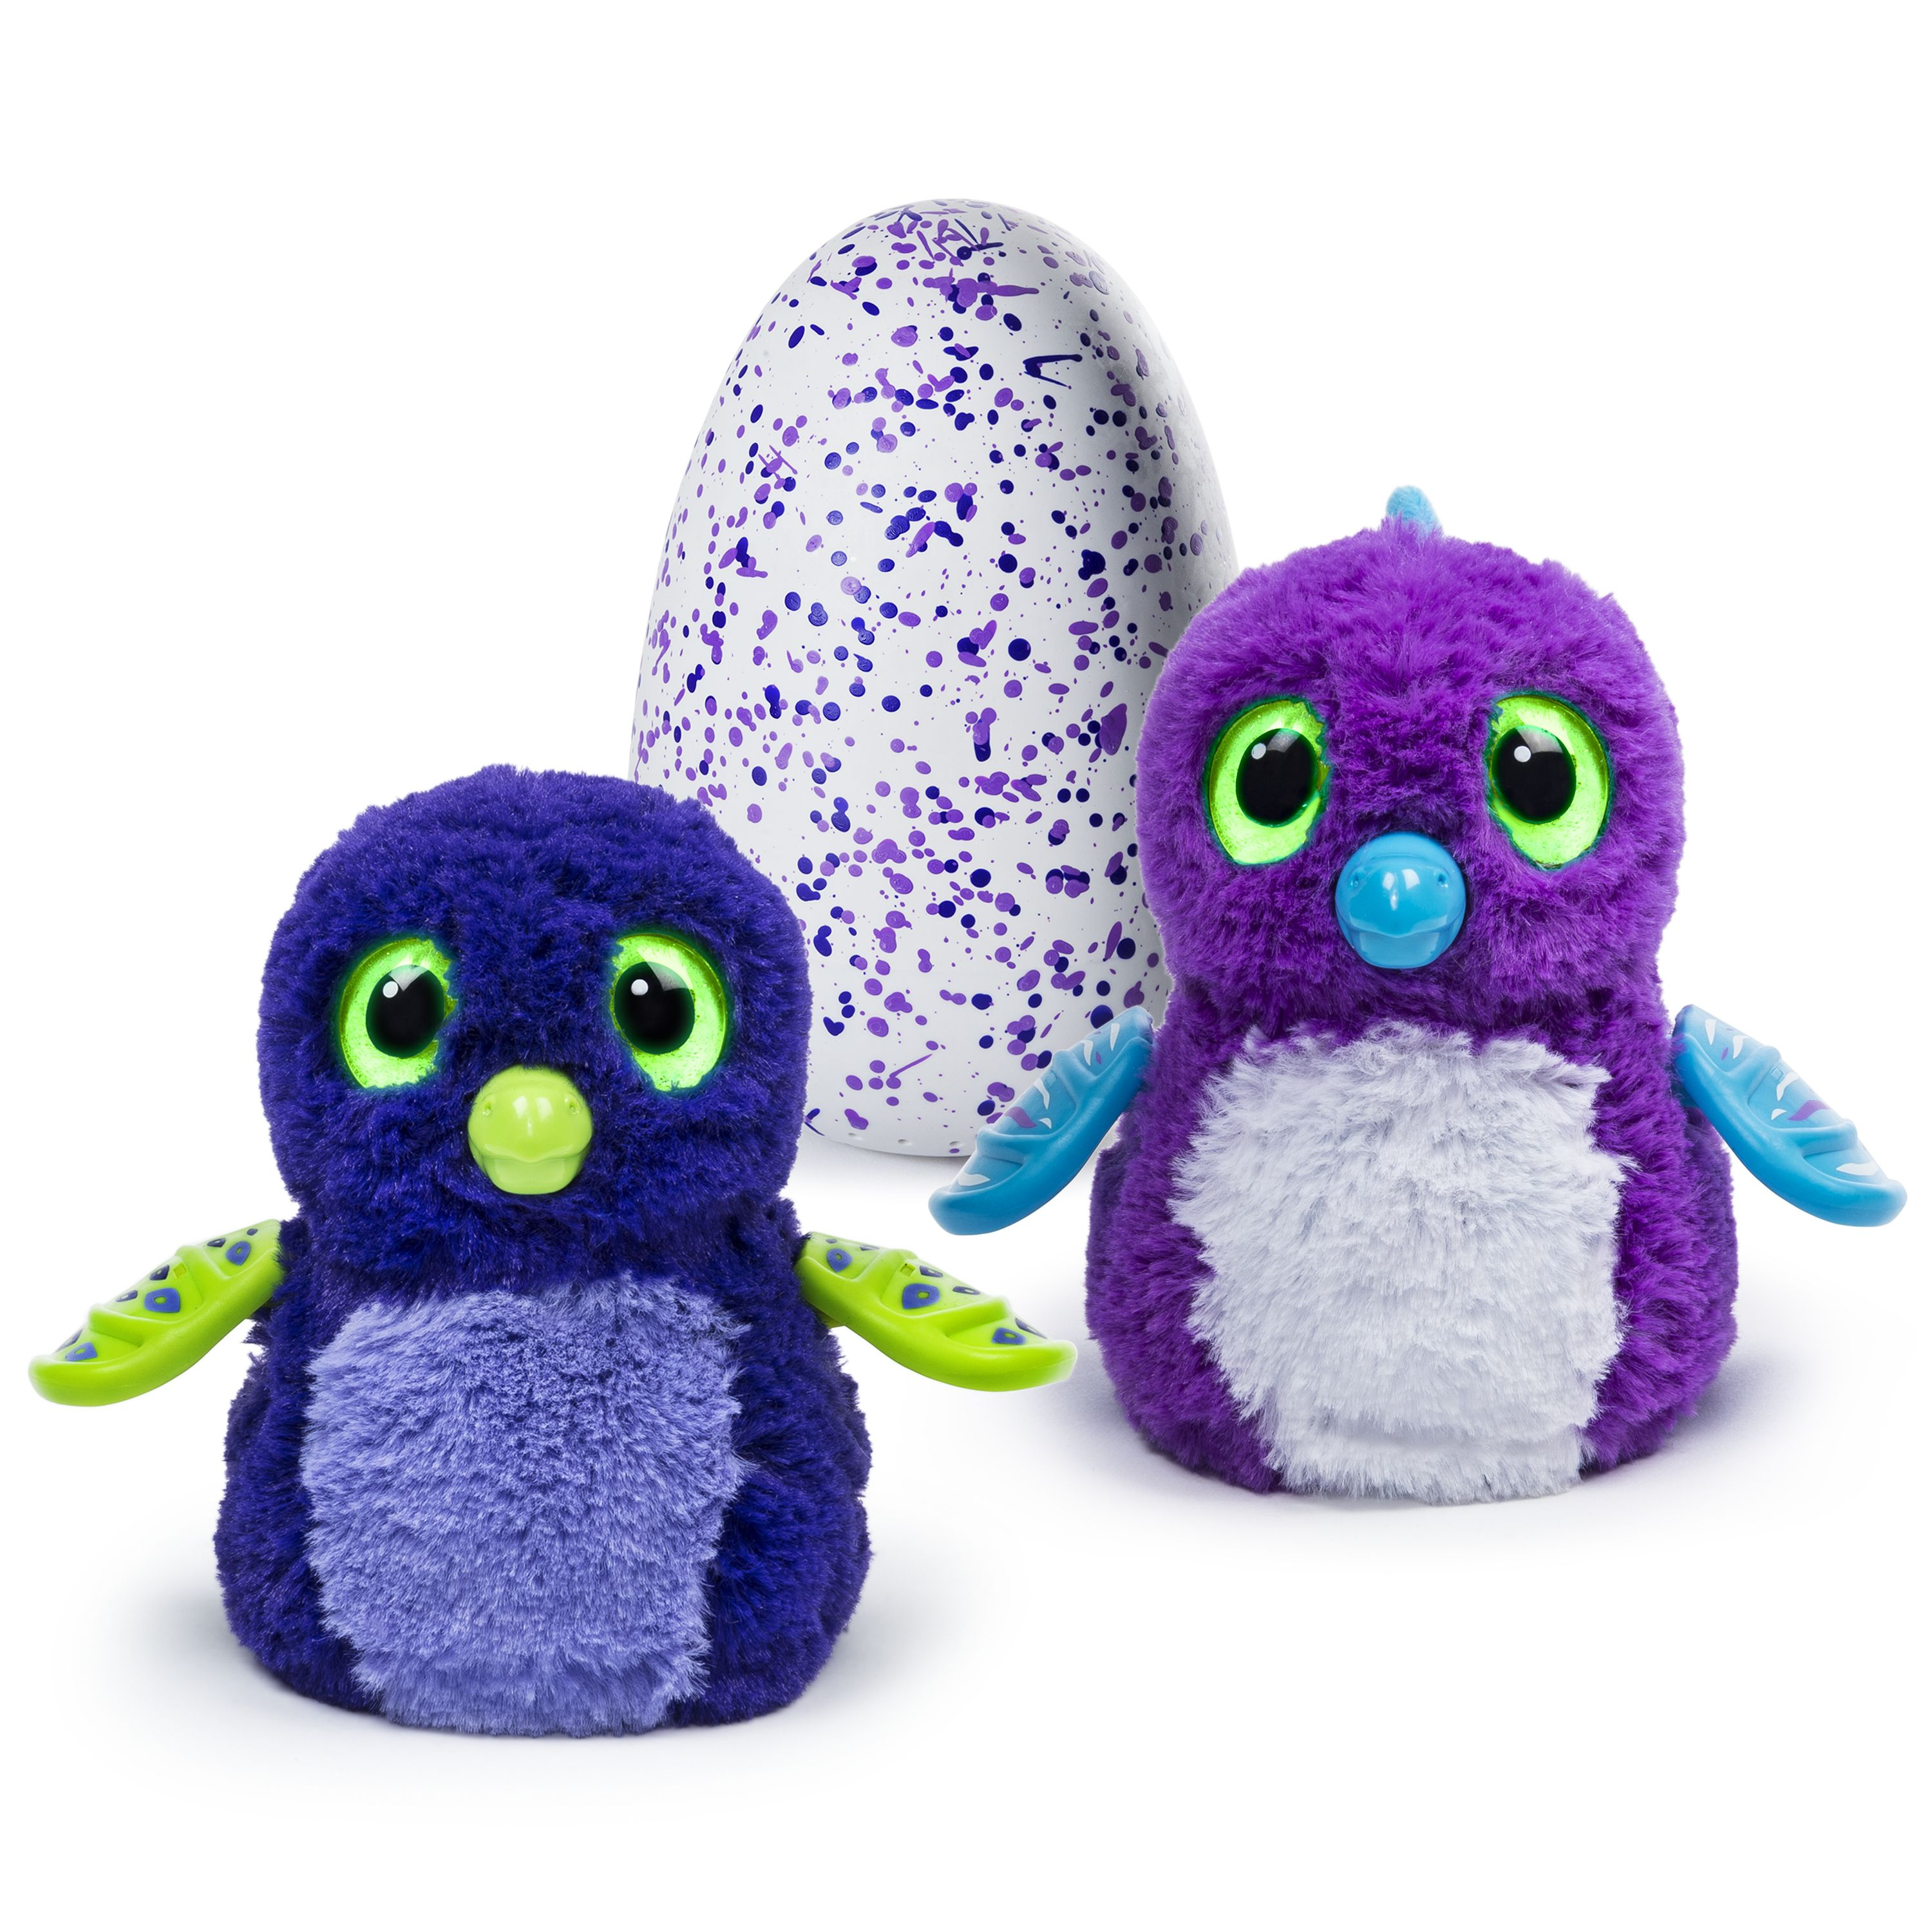 Hatchimals, Hatching Egg, Interactive Creature, Draggle, Blue/Purple Egg by Spin Master